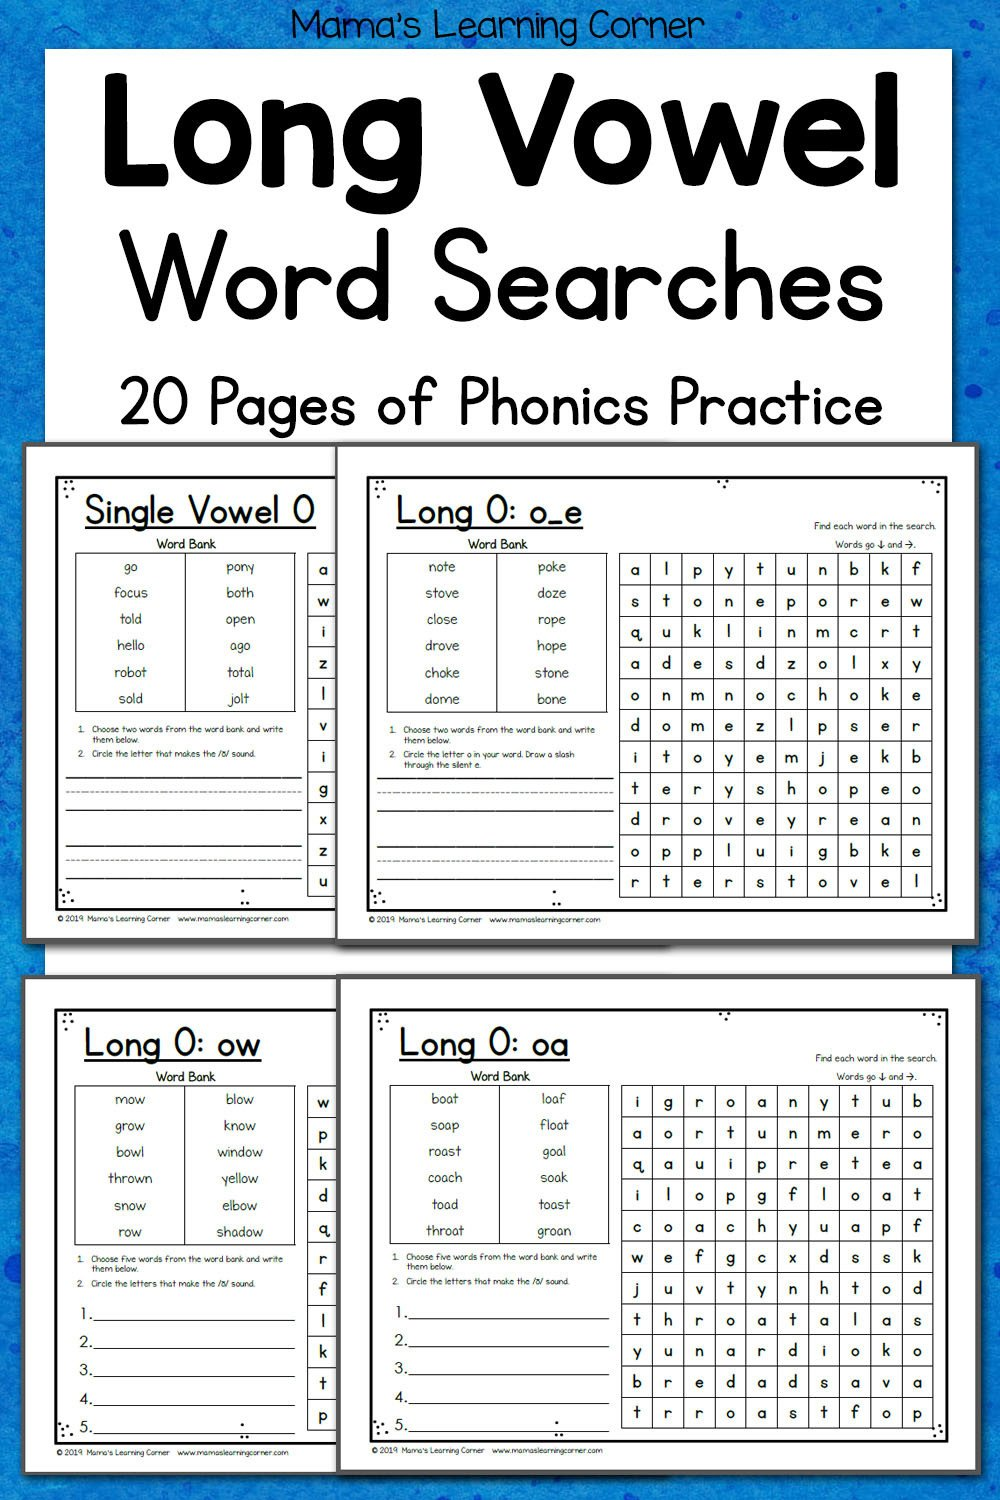 Long Vowel sounds Worksheets Long Vowel Word Search Puzzles Mamas Learning Corner